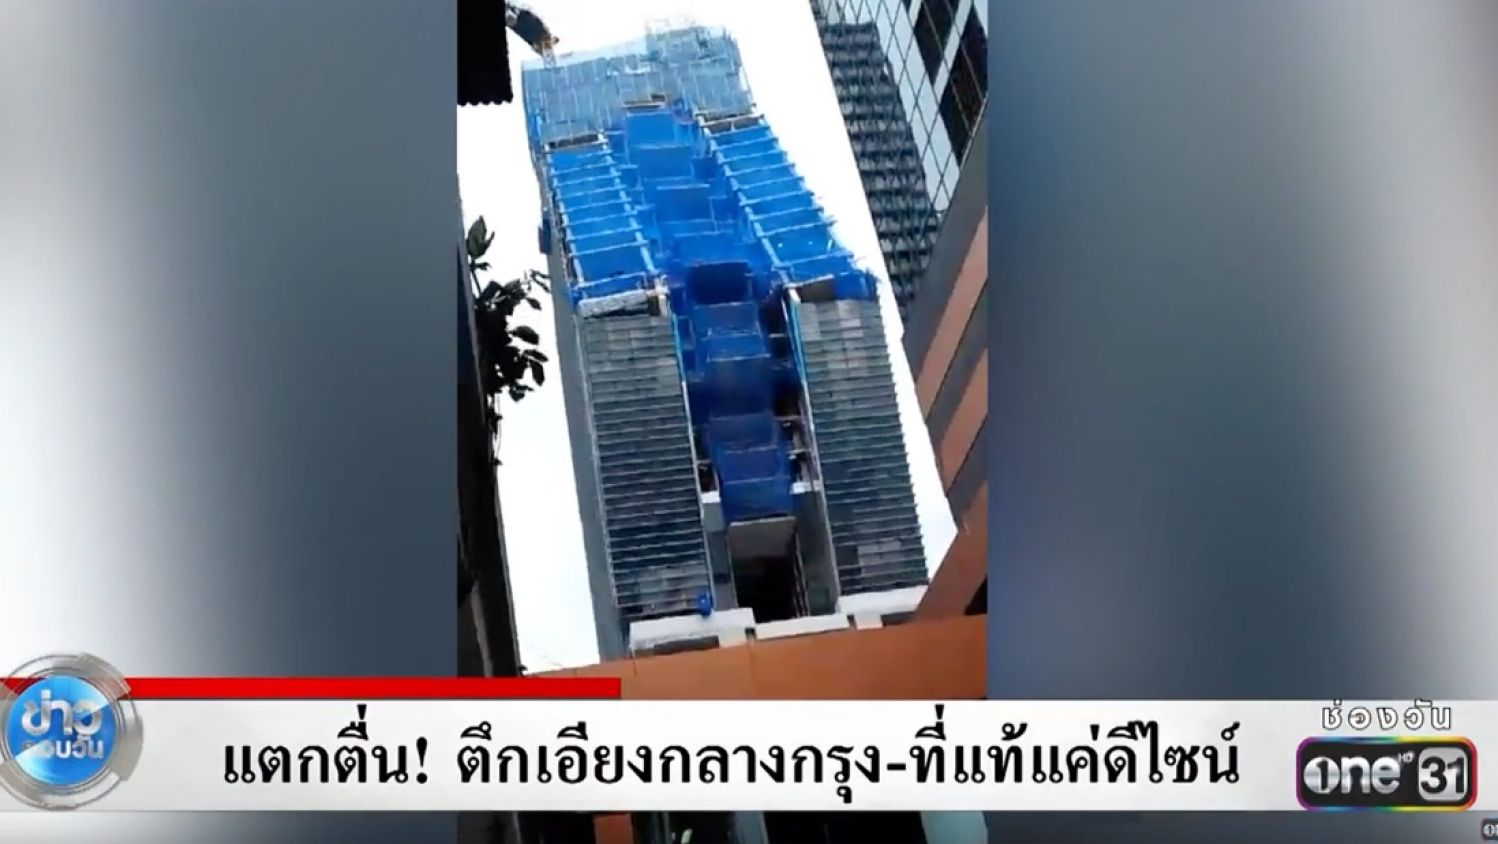 Tipps Für Bangkok Building That Looks Like It S Falling Over Triggers Minor Panic In